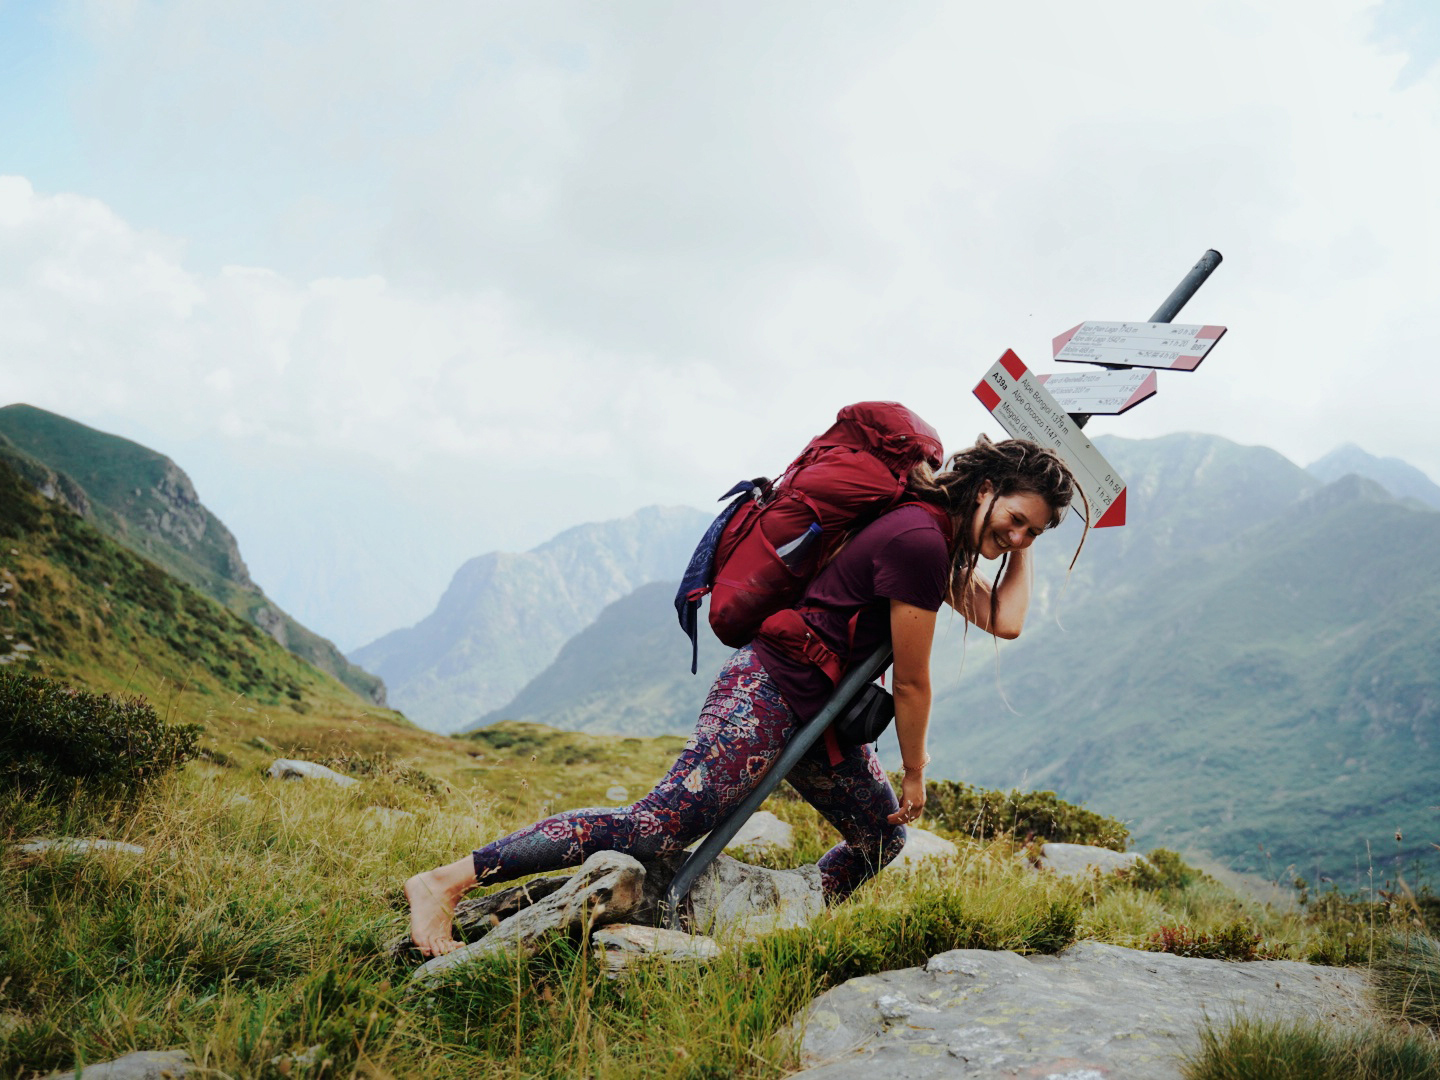 An exhausted, but happy hiker leaning onto a lopsided sign post.